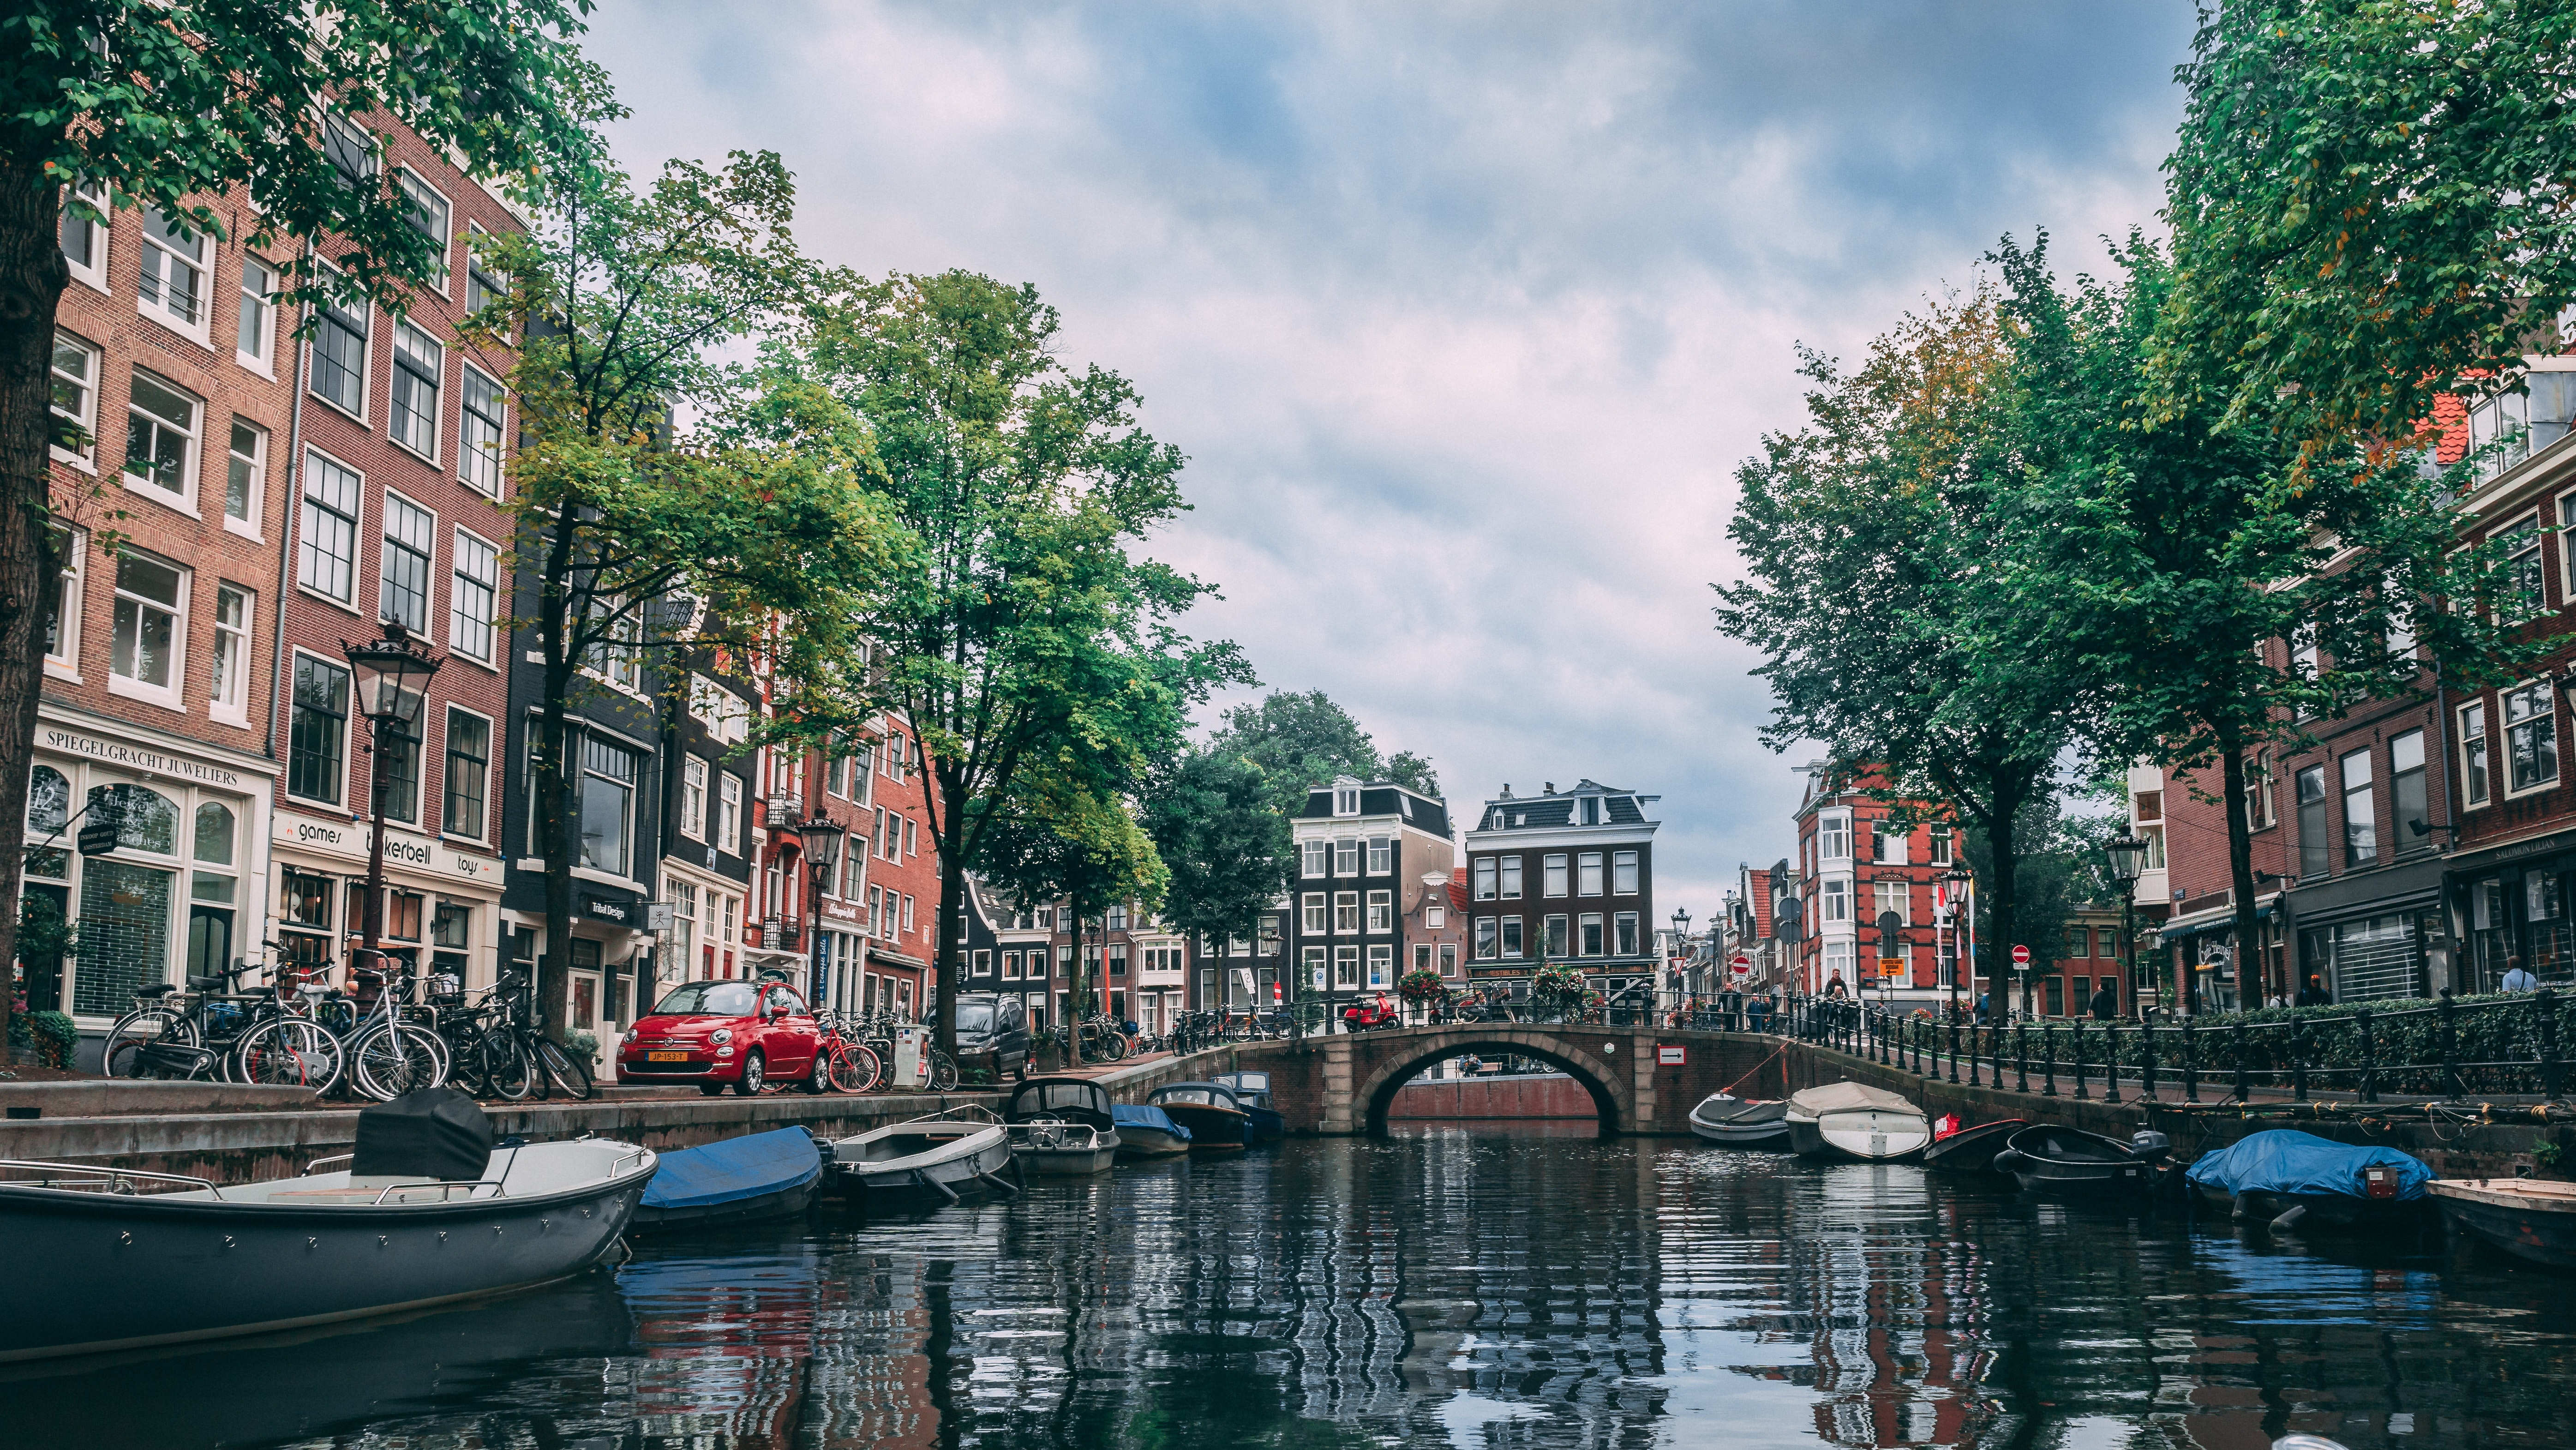 Canal Boat Tour, Things To Do In Amsterdam